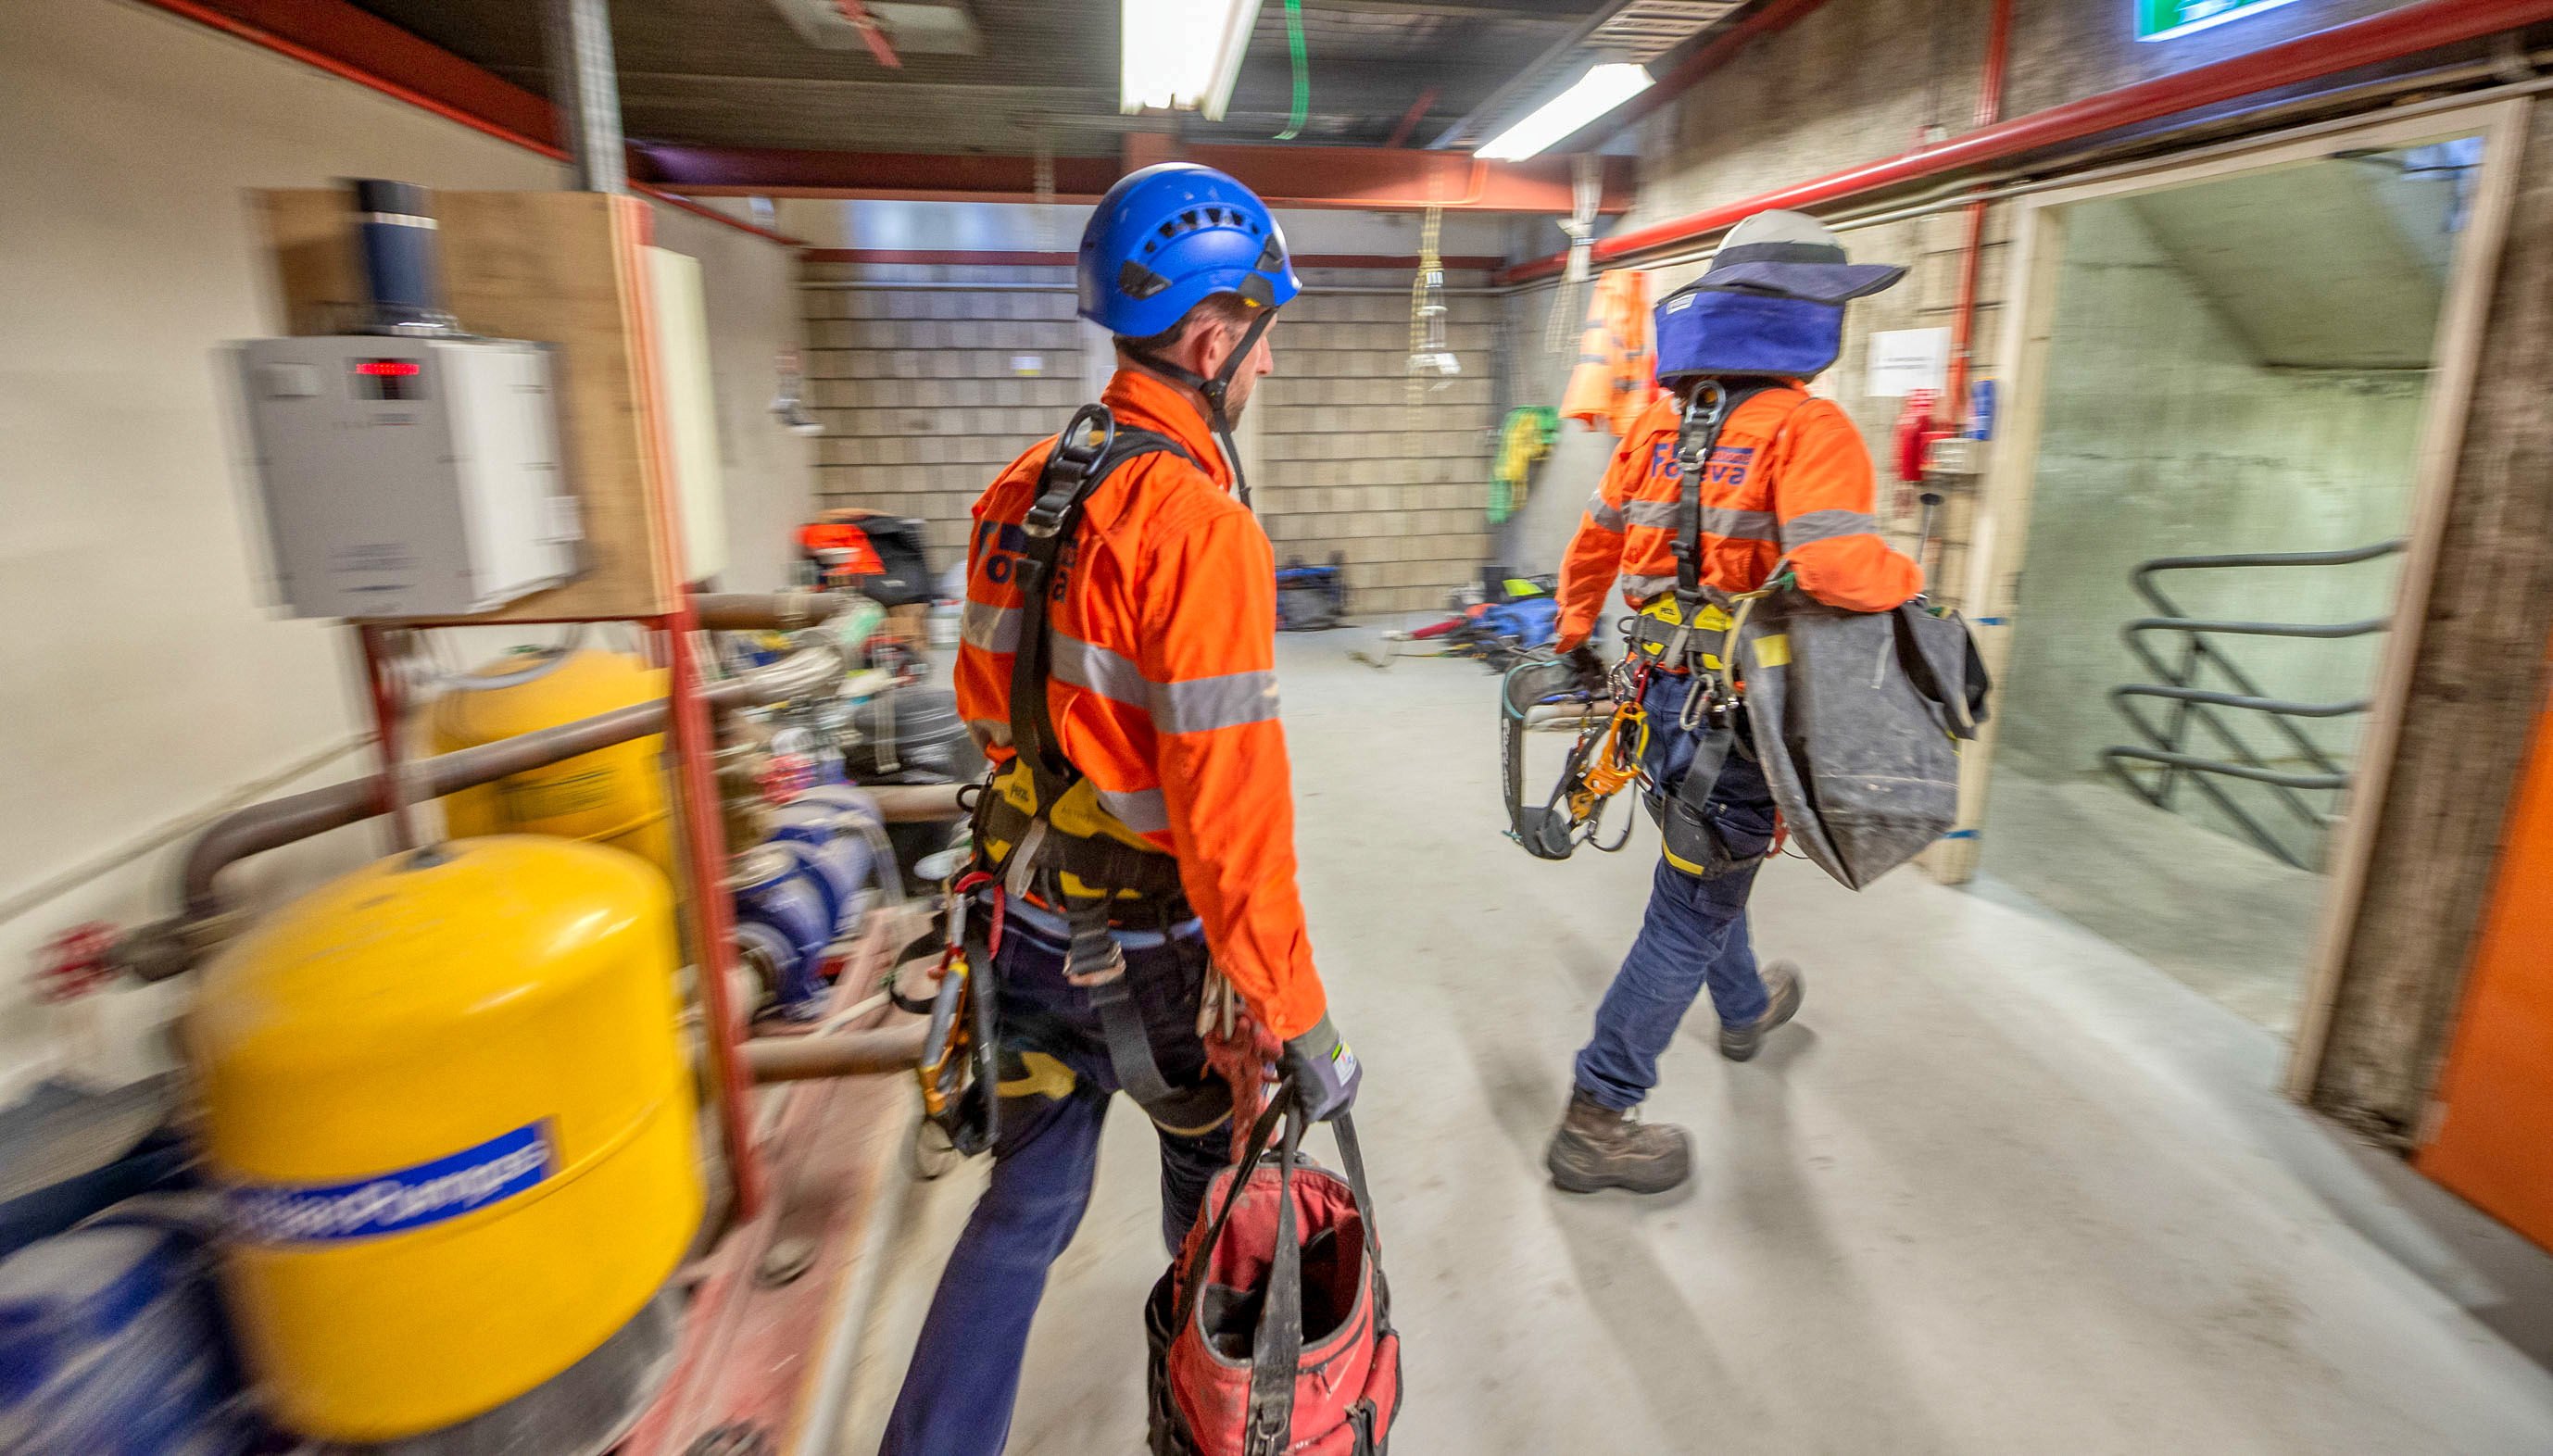 Going to work, captured by captured by Rapax Construction Photography